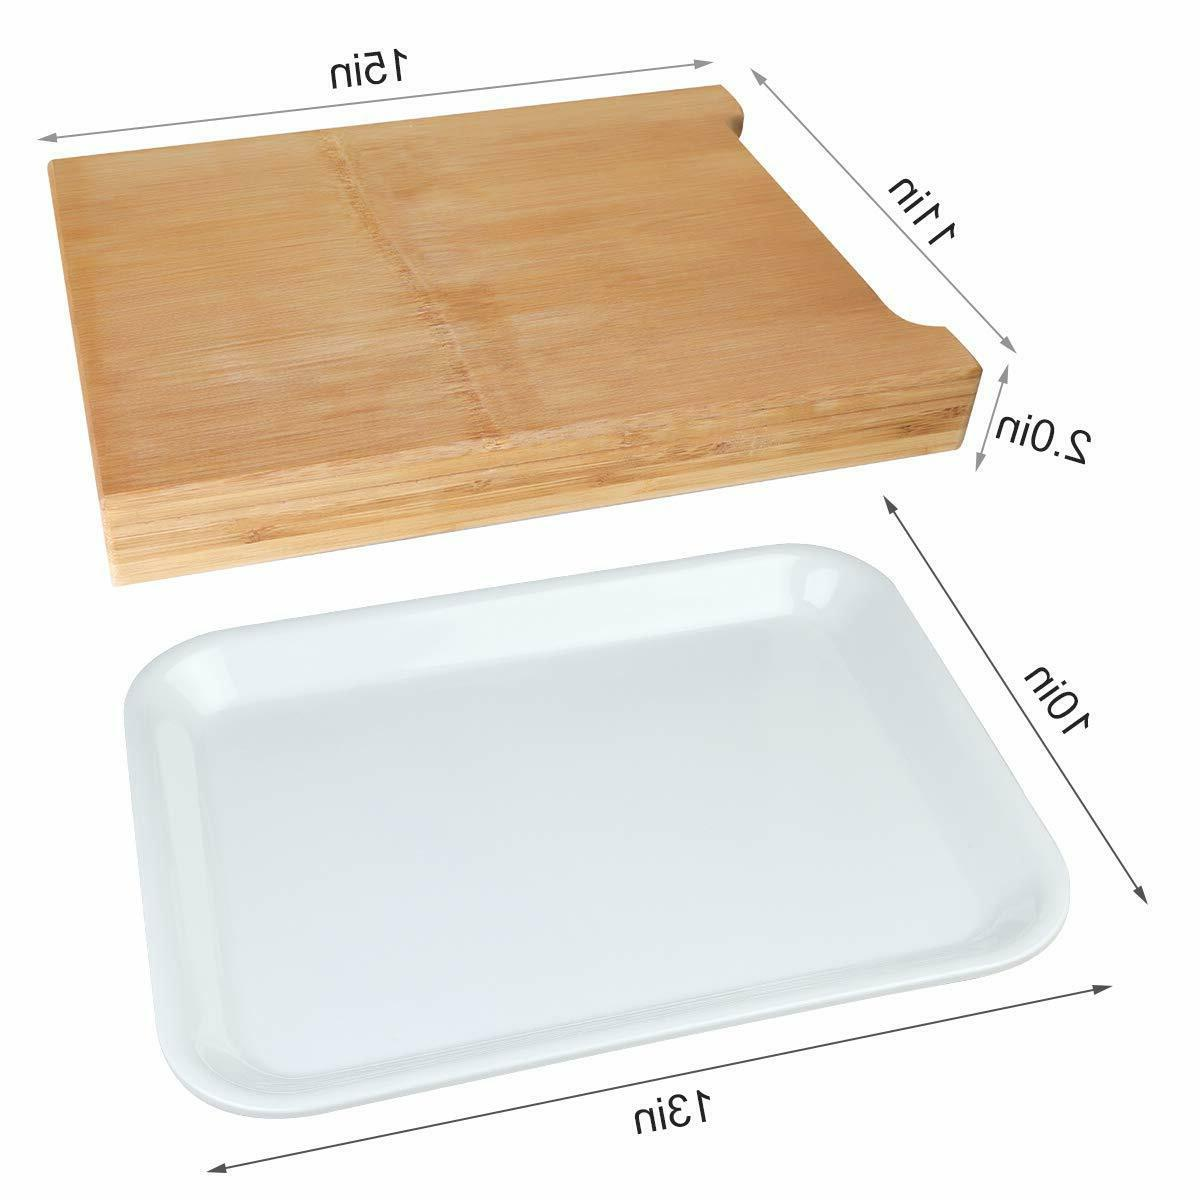 Bamboo Cutting Board with Trays Serving Cheese Cooking